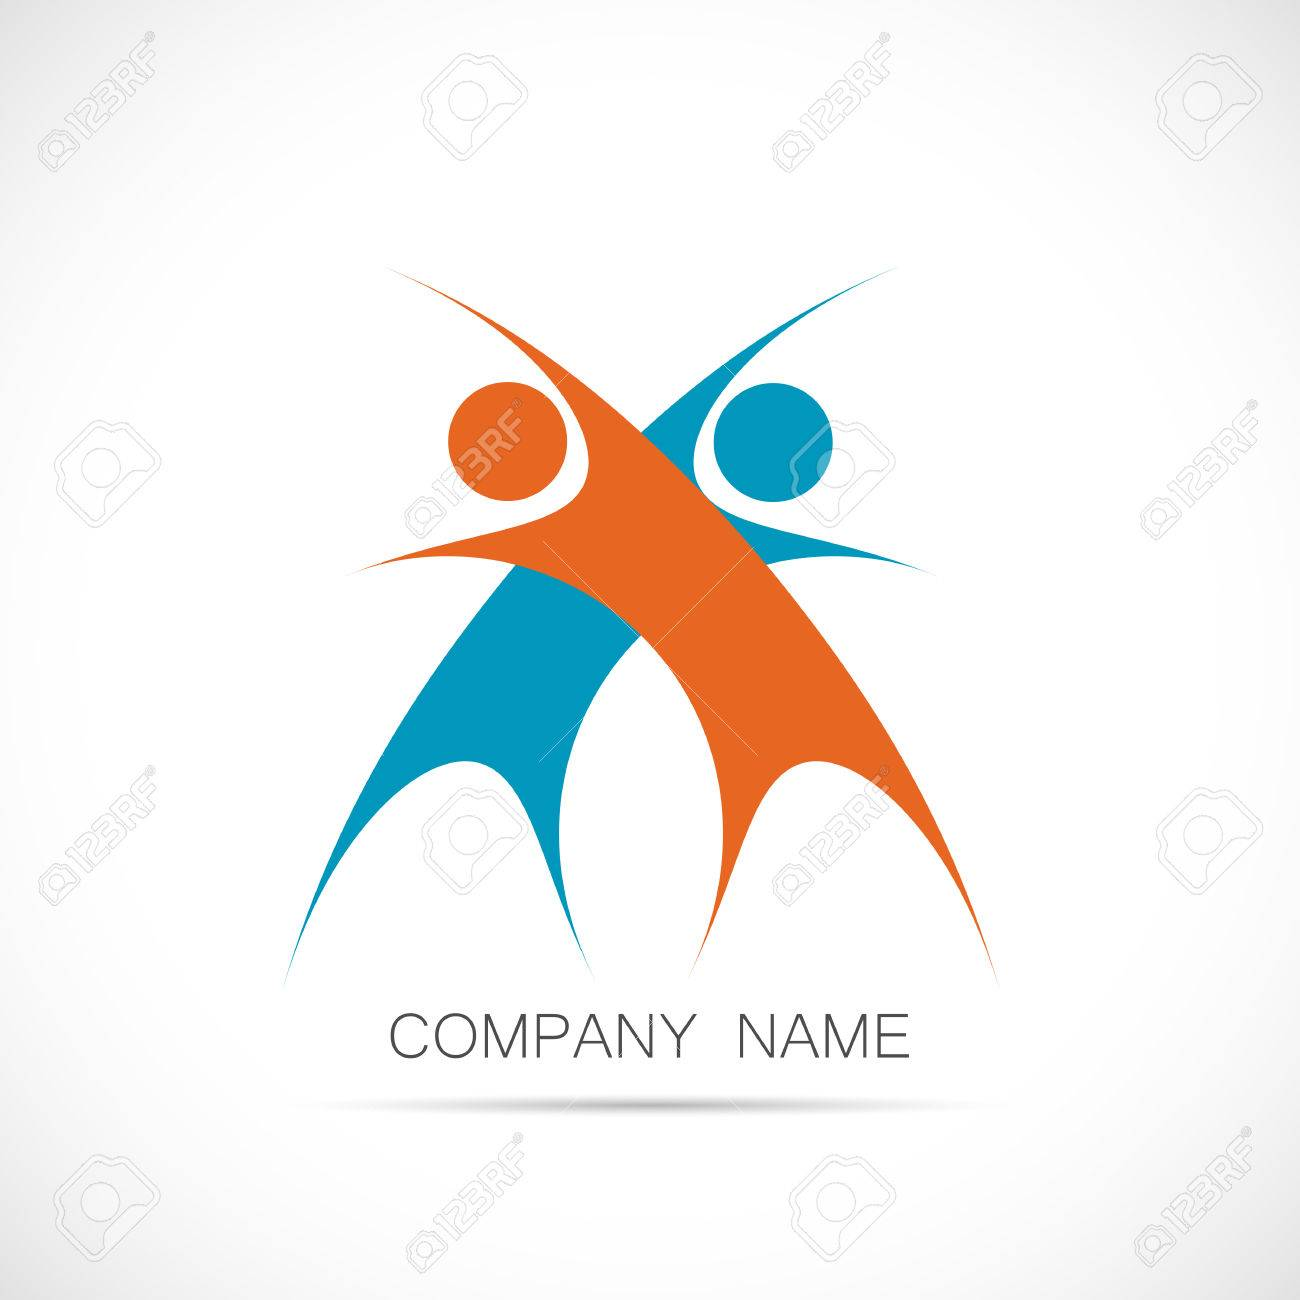 Illustration of a logo design of two abstract figures isolated on a white background. - 34773384